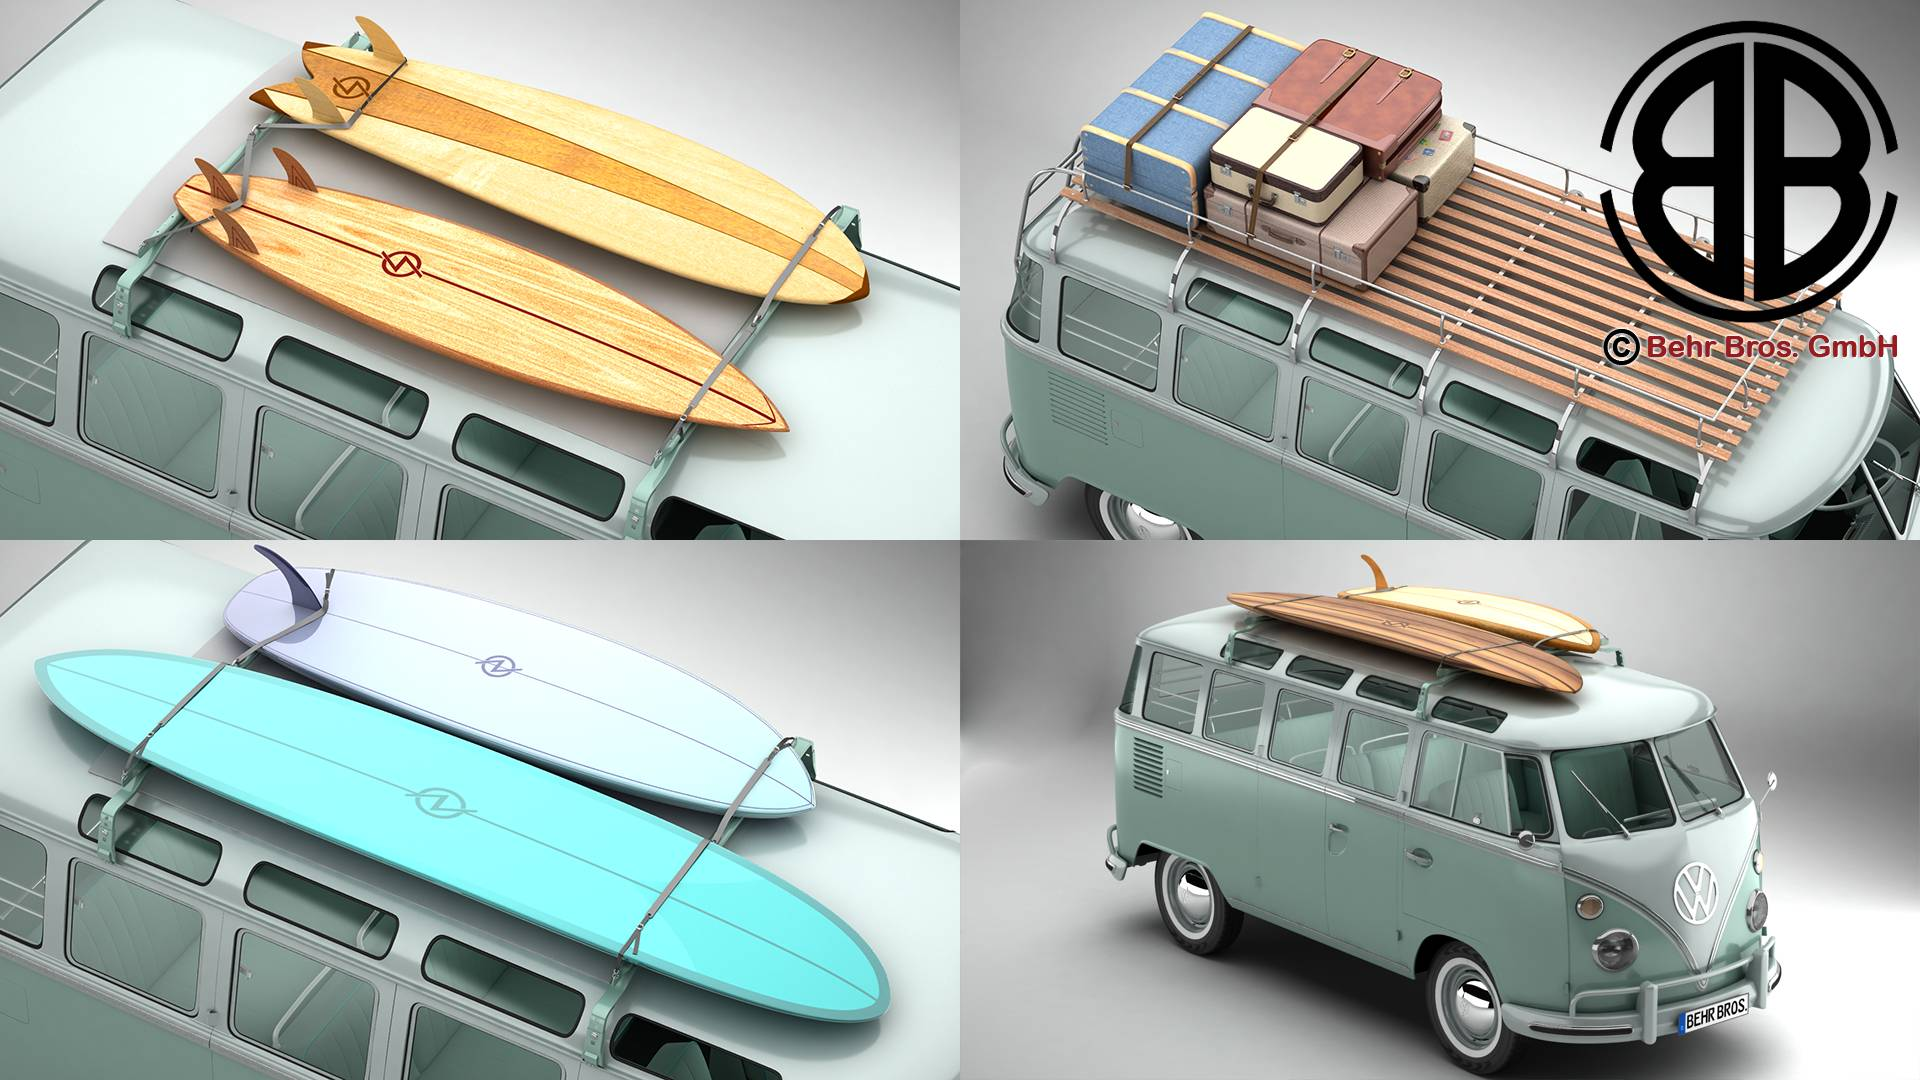 gabhálais volkswagen t1 samba 1963 Accessories 3d model 3ds max fbx c4d le do thoil 266807